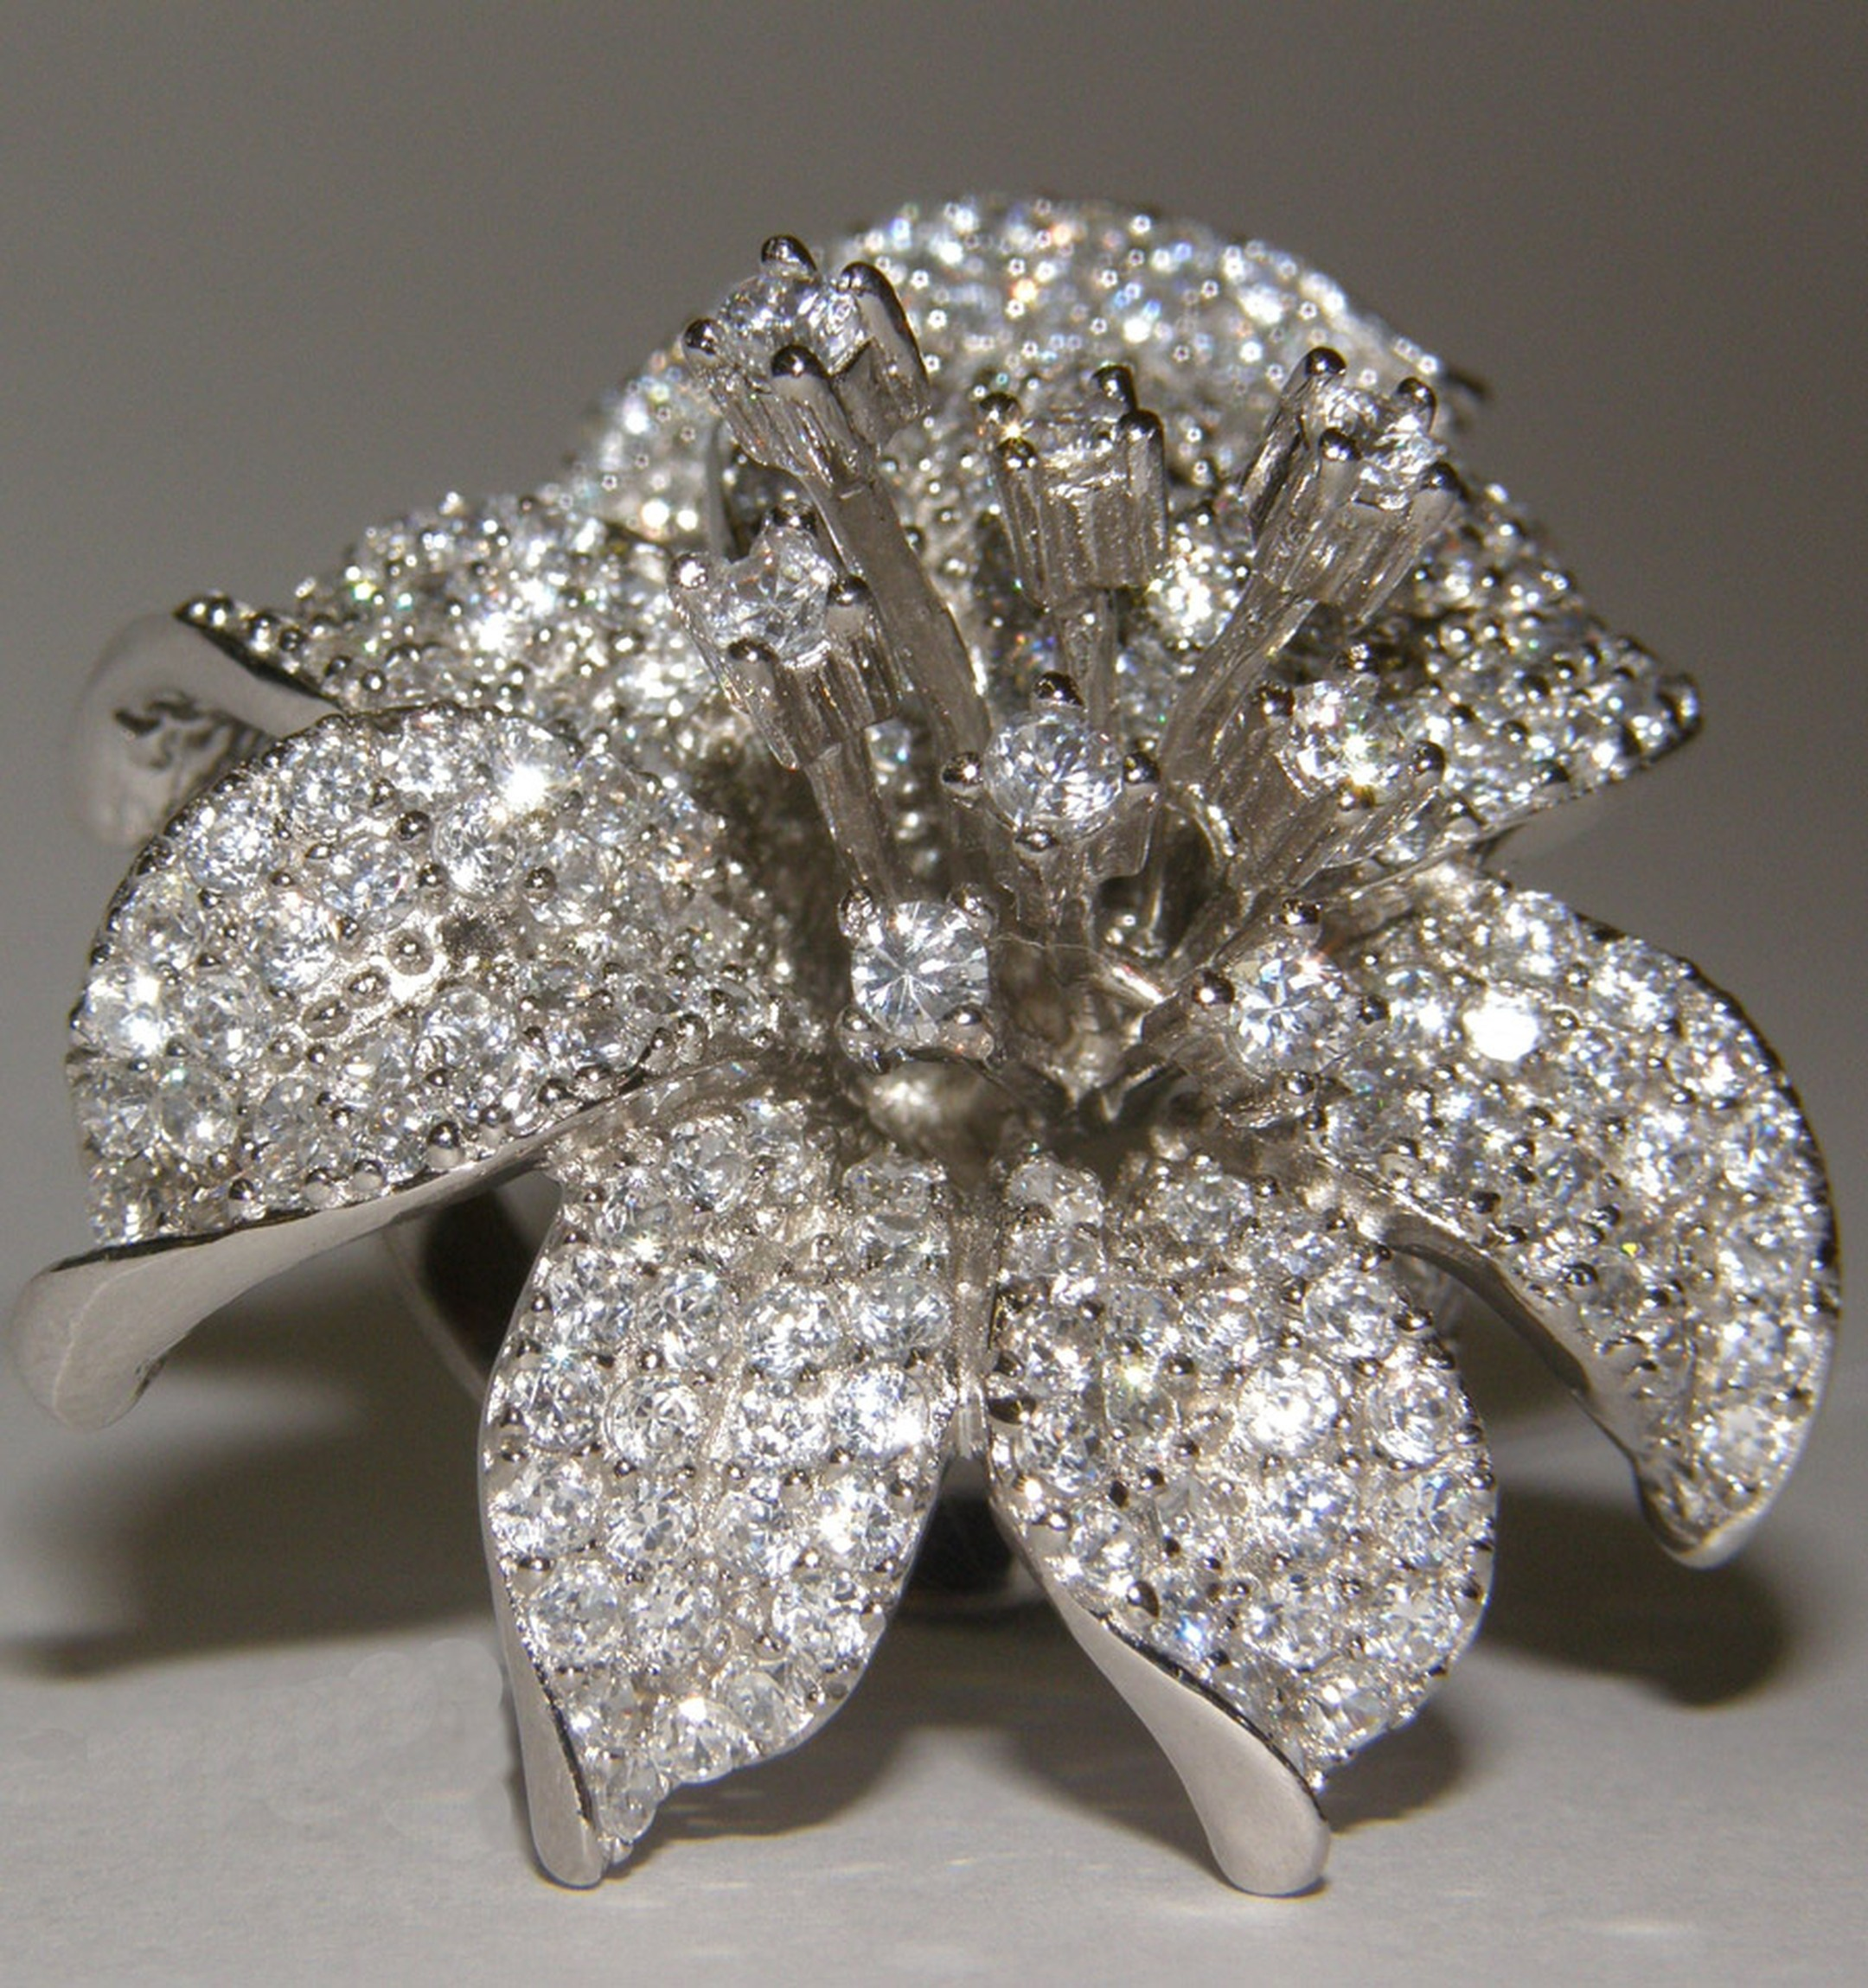 Burlington-Arcade-Large-Flower-ring-set-in-silver-rodhium-plated-stones-Cubic-Zirconia.jpg